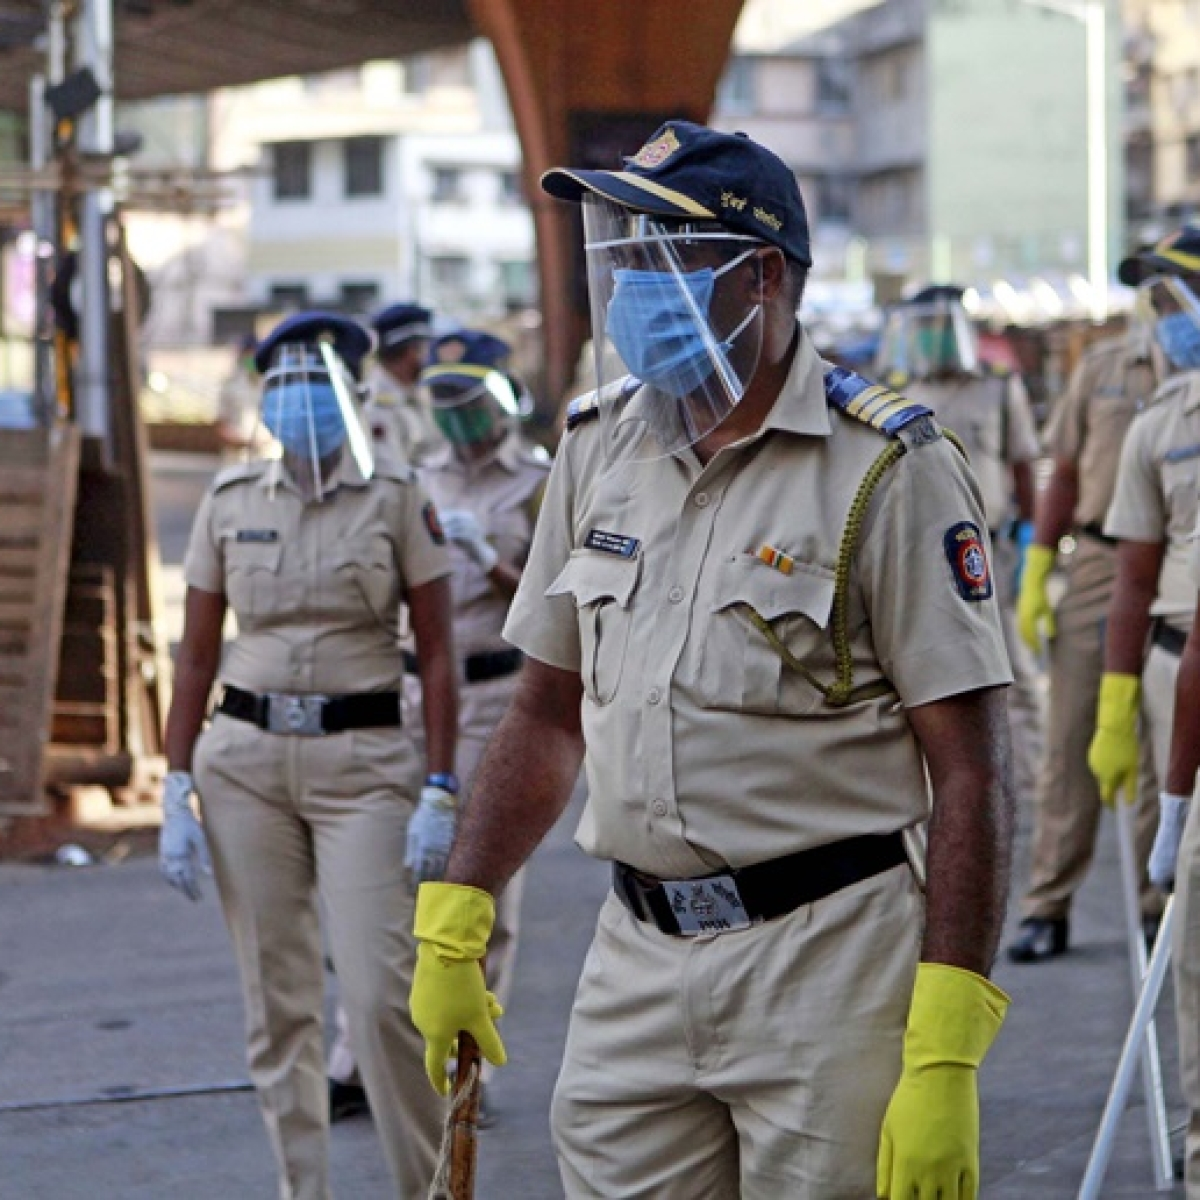 93 more Maharashtra Police personnel test positive for COVID-19